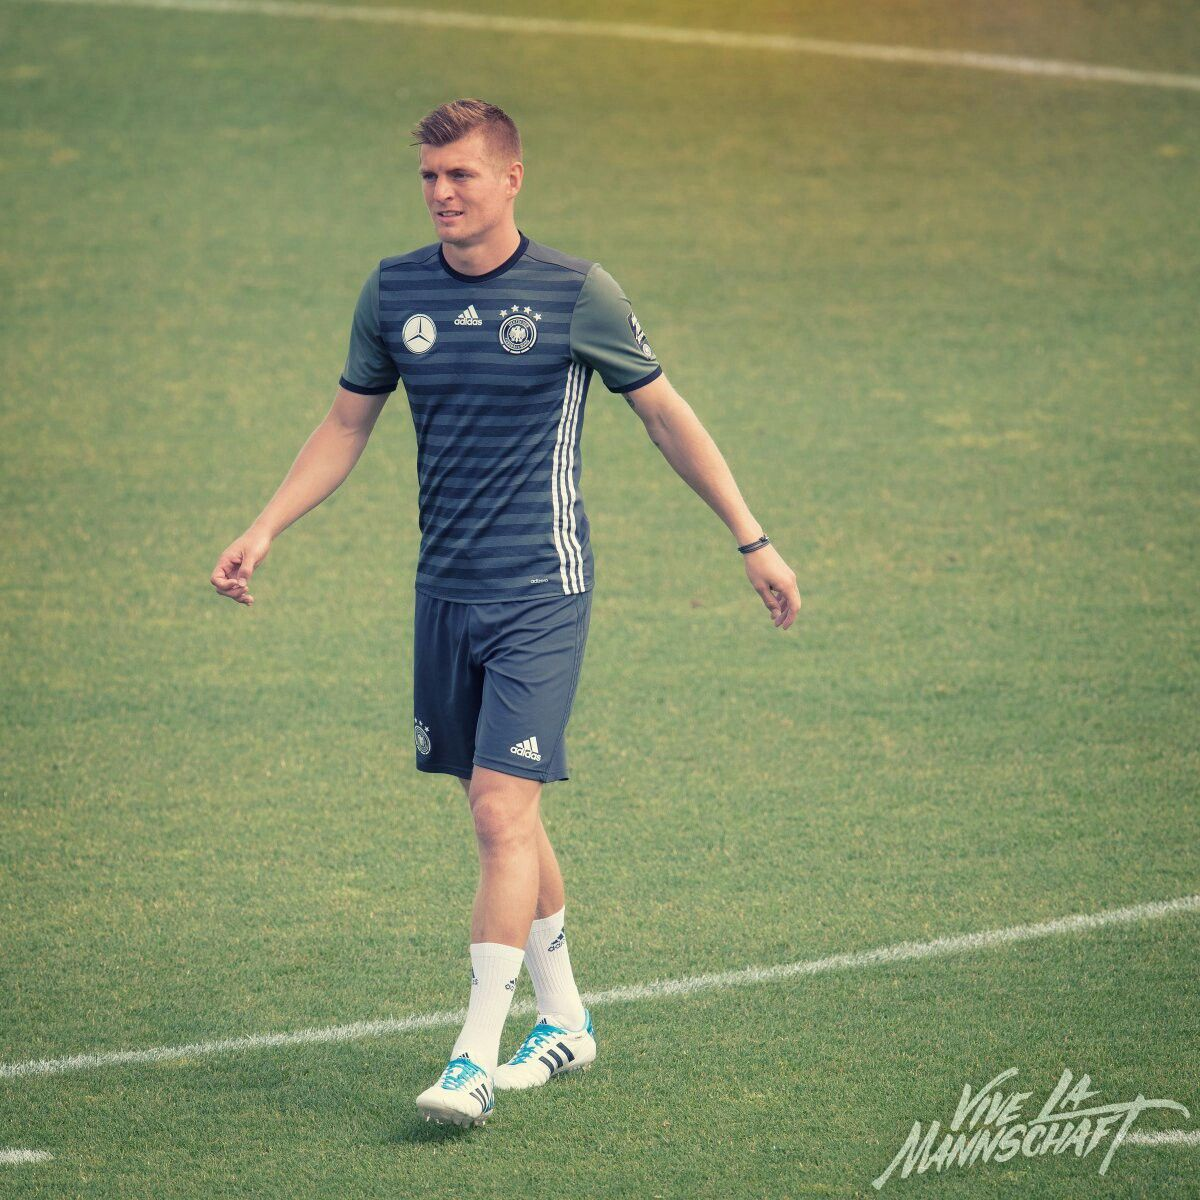 Pin by ฉุด ช่อน on Toni Kroos Pinterest